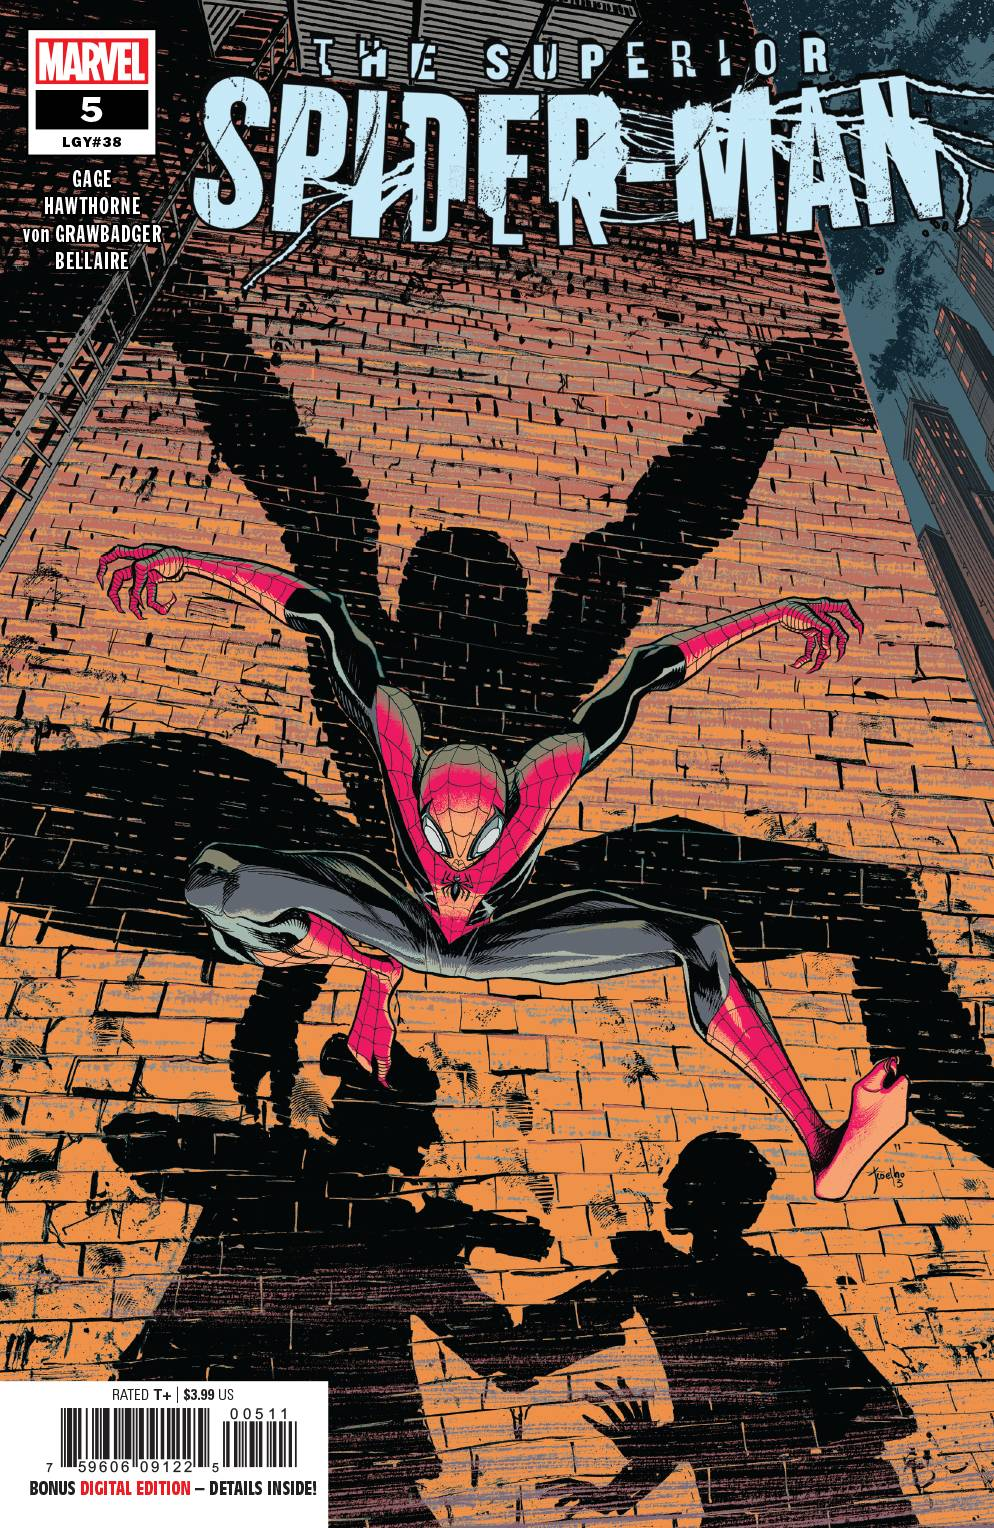 SUPERIOR SPIDER-MAN 5.jpg